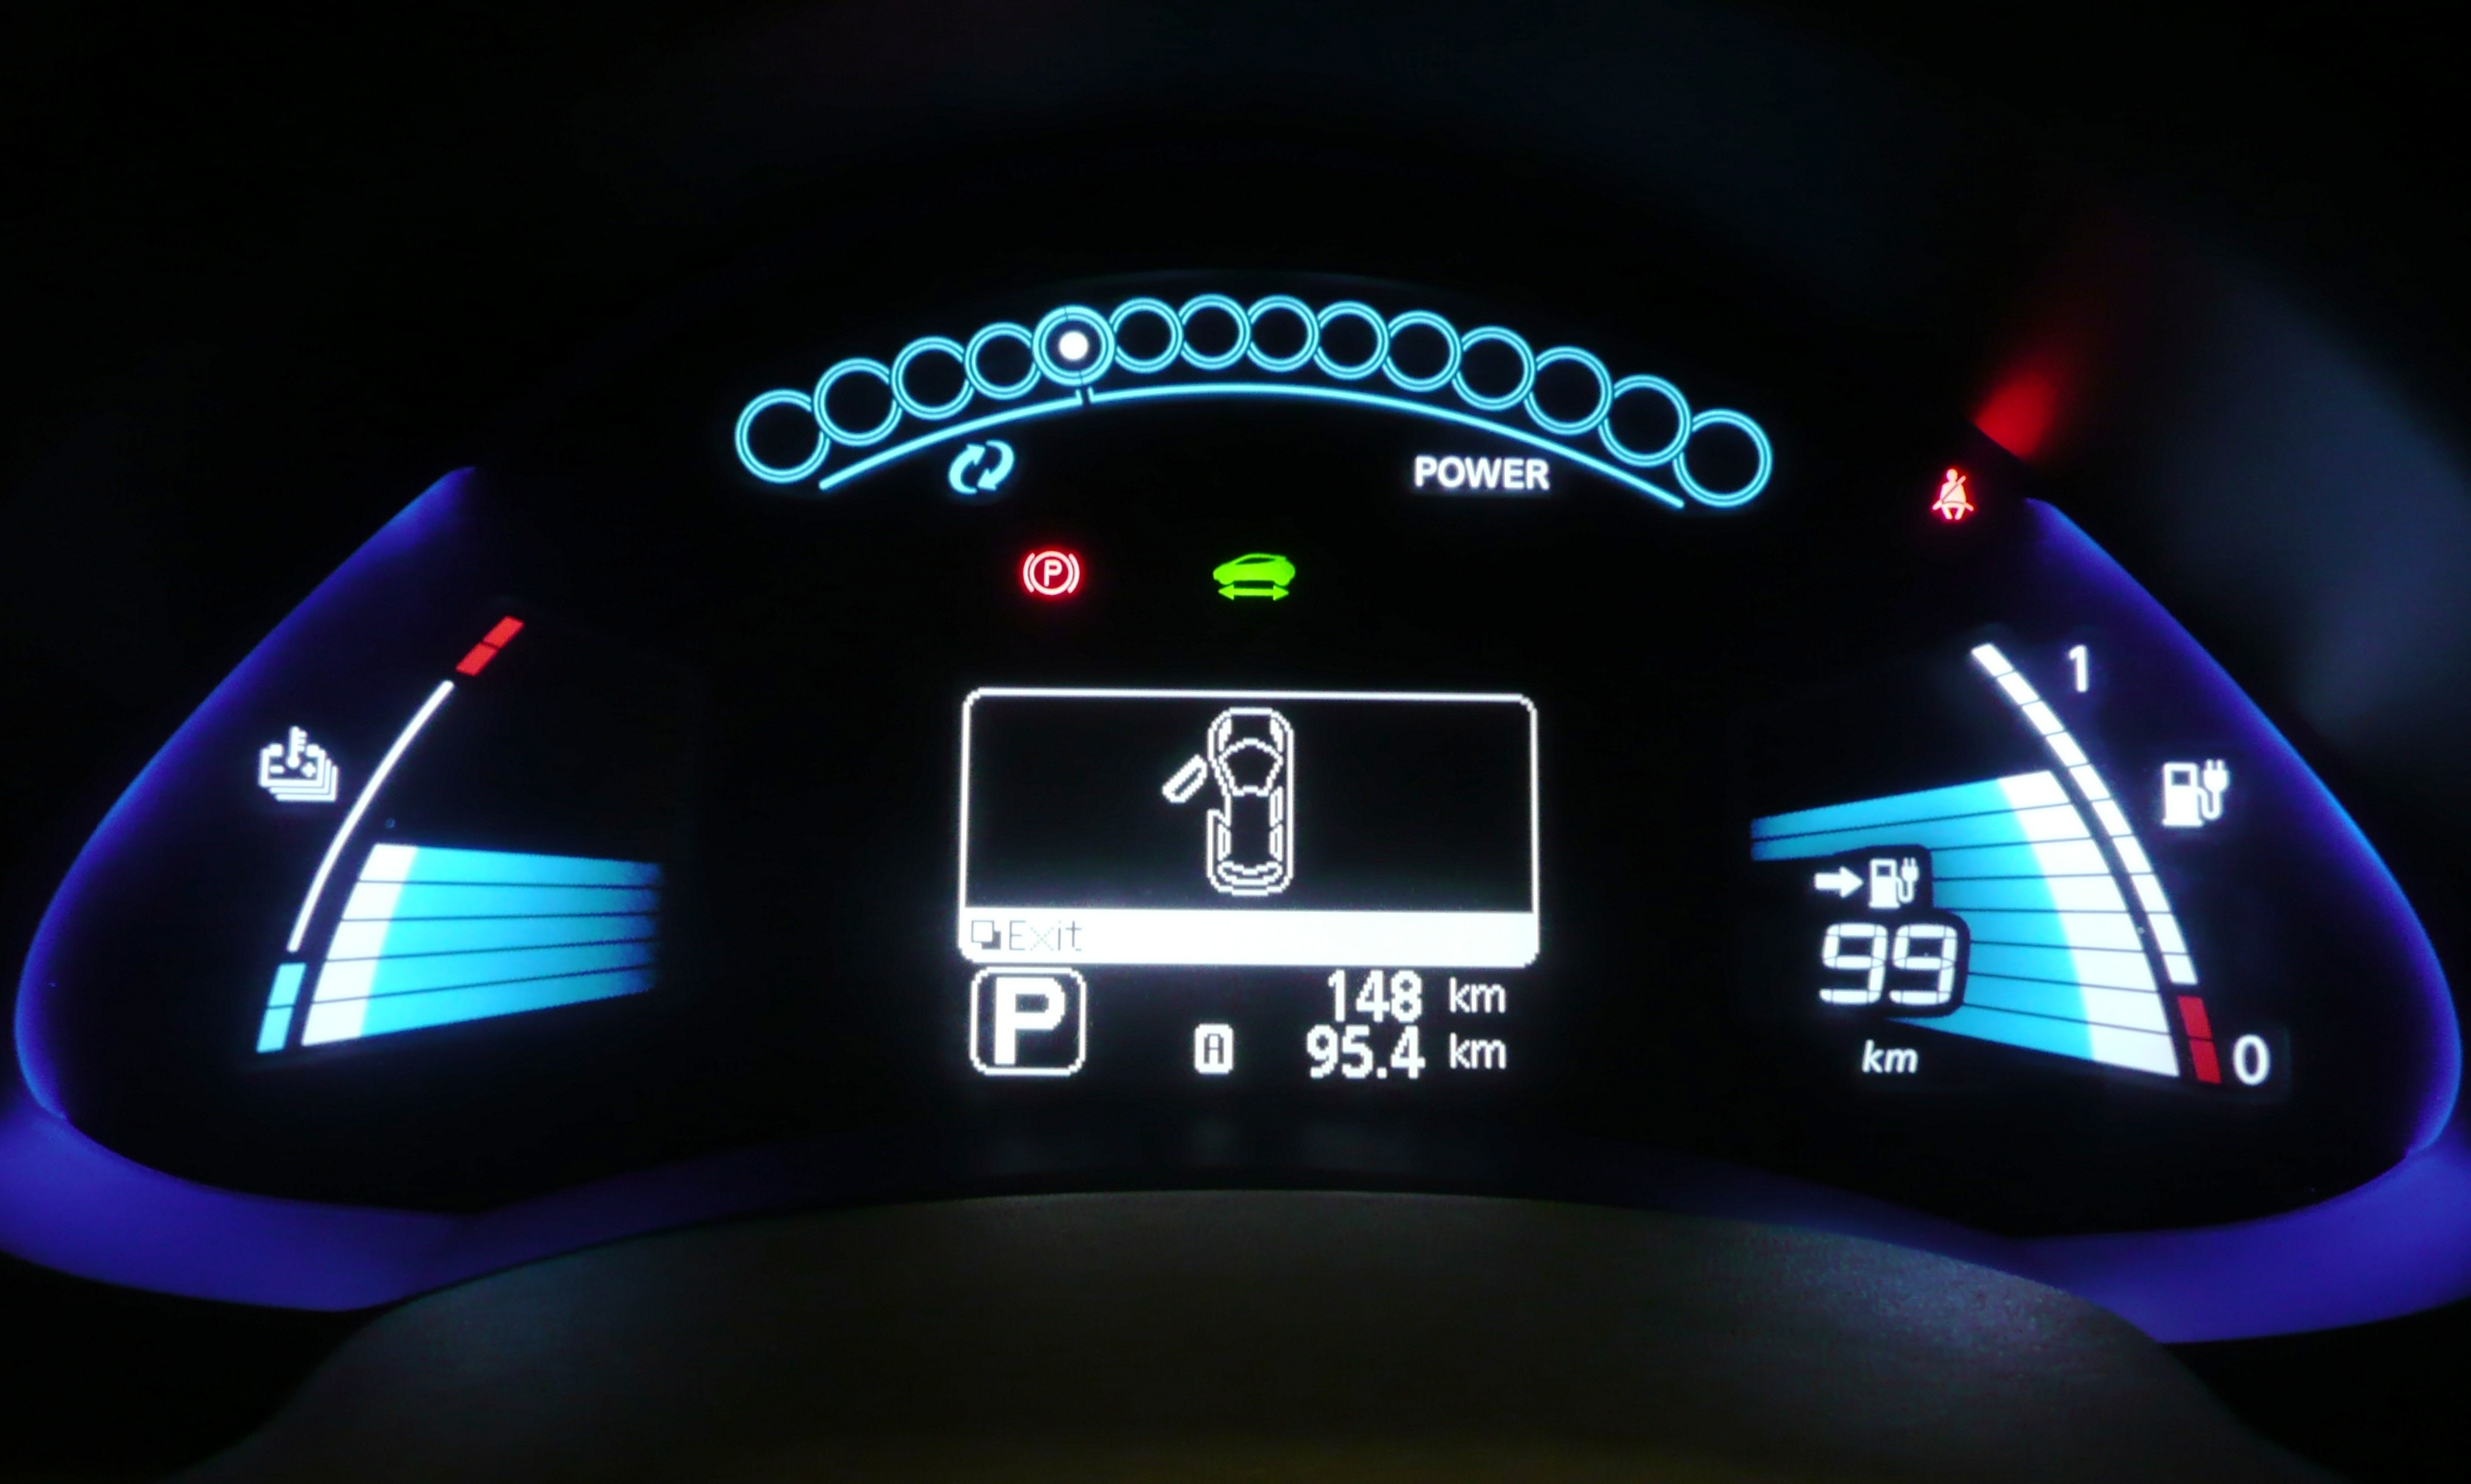 File Nissan Leaf Dashboard Display 2 Jpg Wikimedia Commons